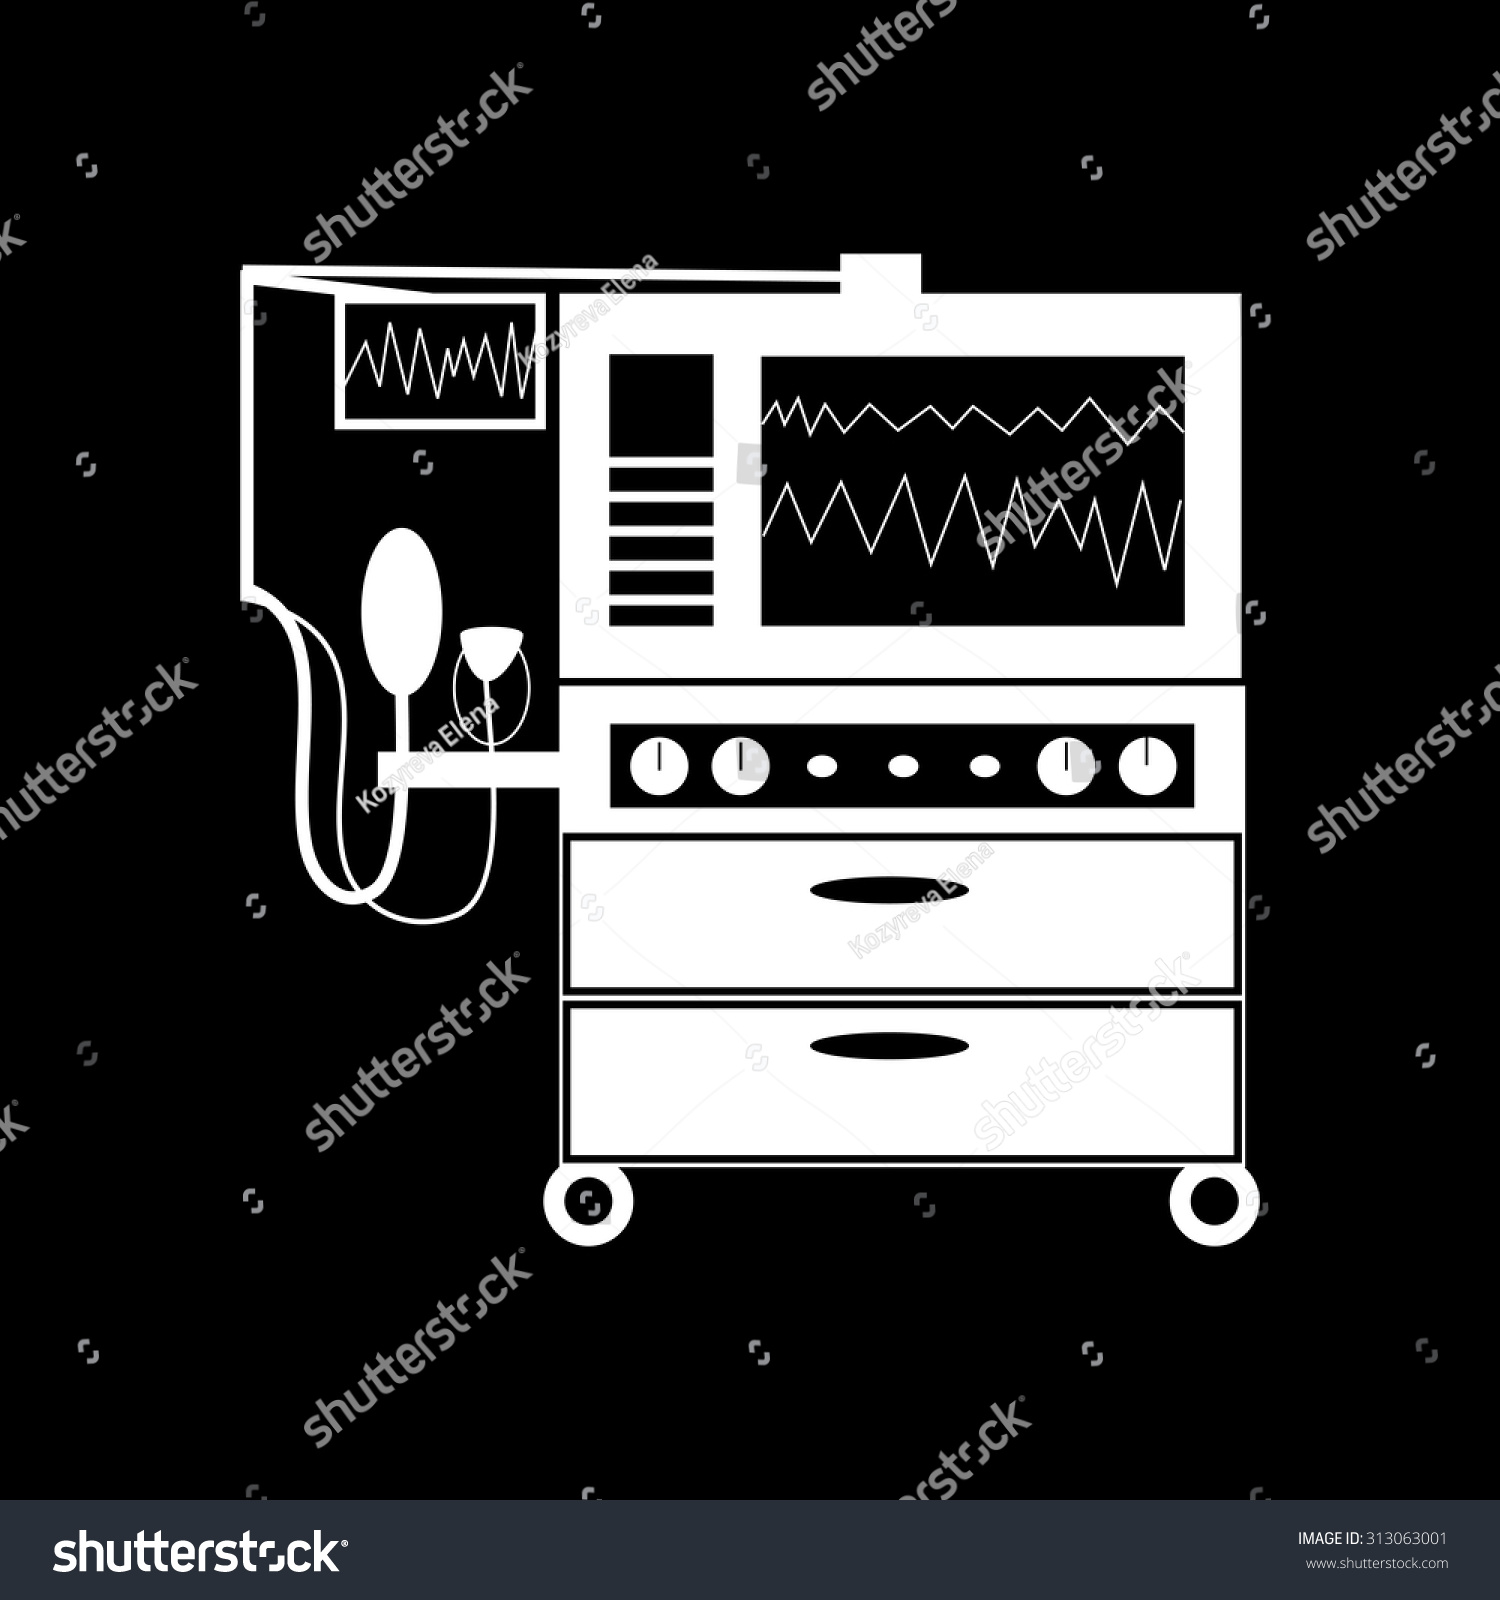 Apparatus Lung Ventilation Medical Technology Black Stock Vector